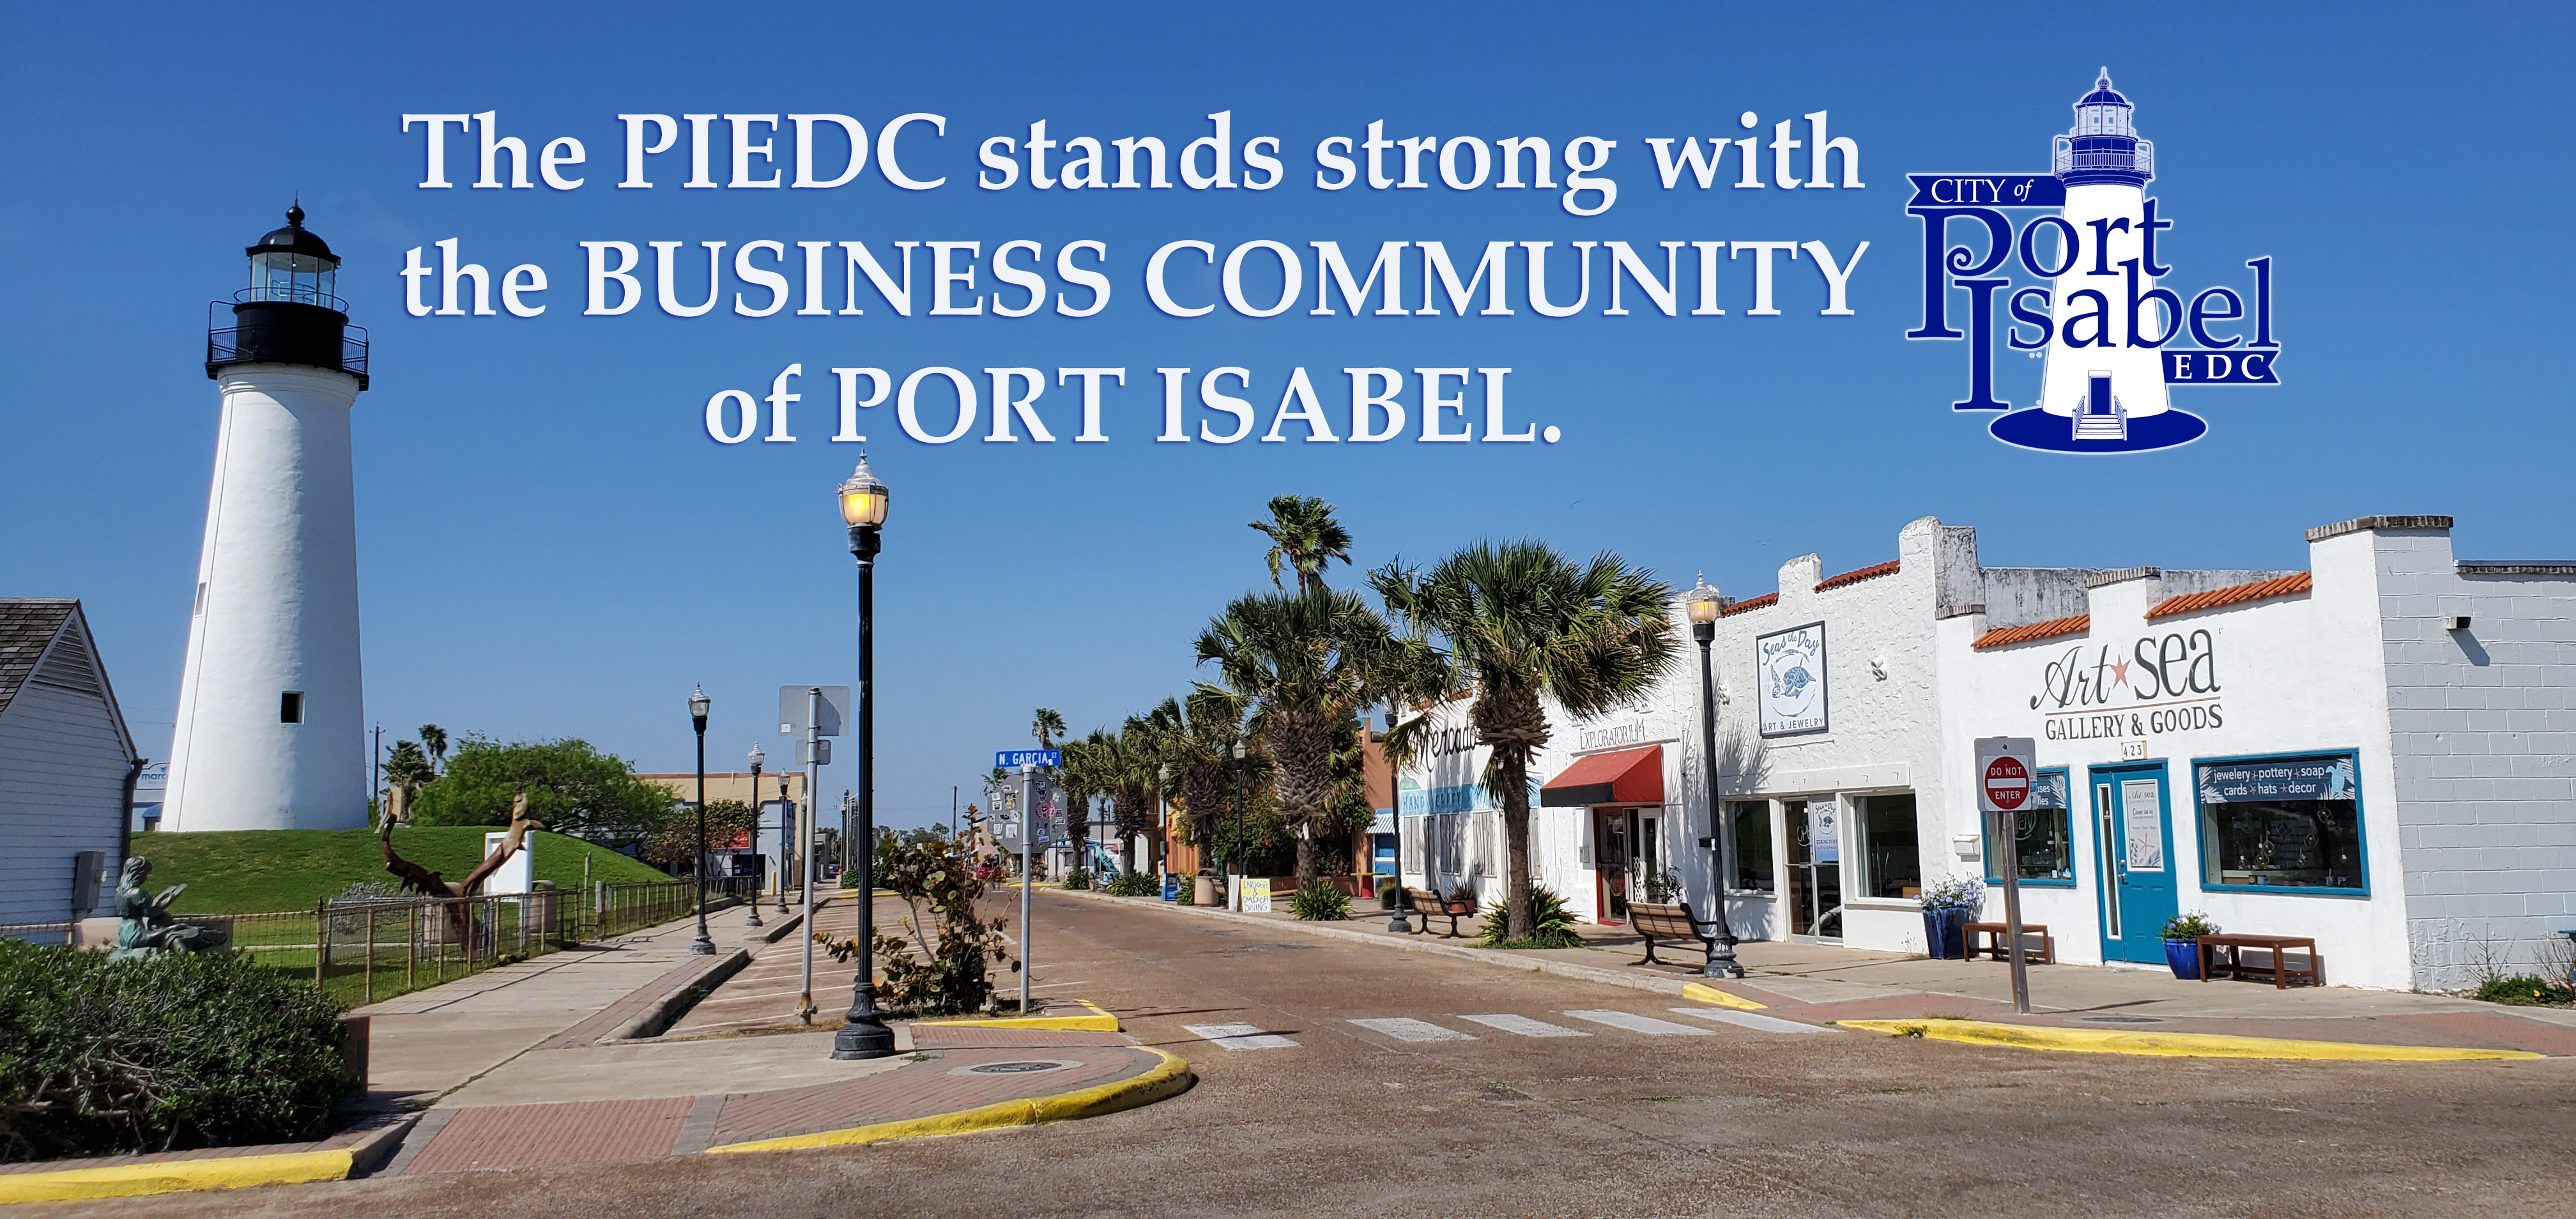 Port Isabel EDC supports our business community!